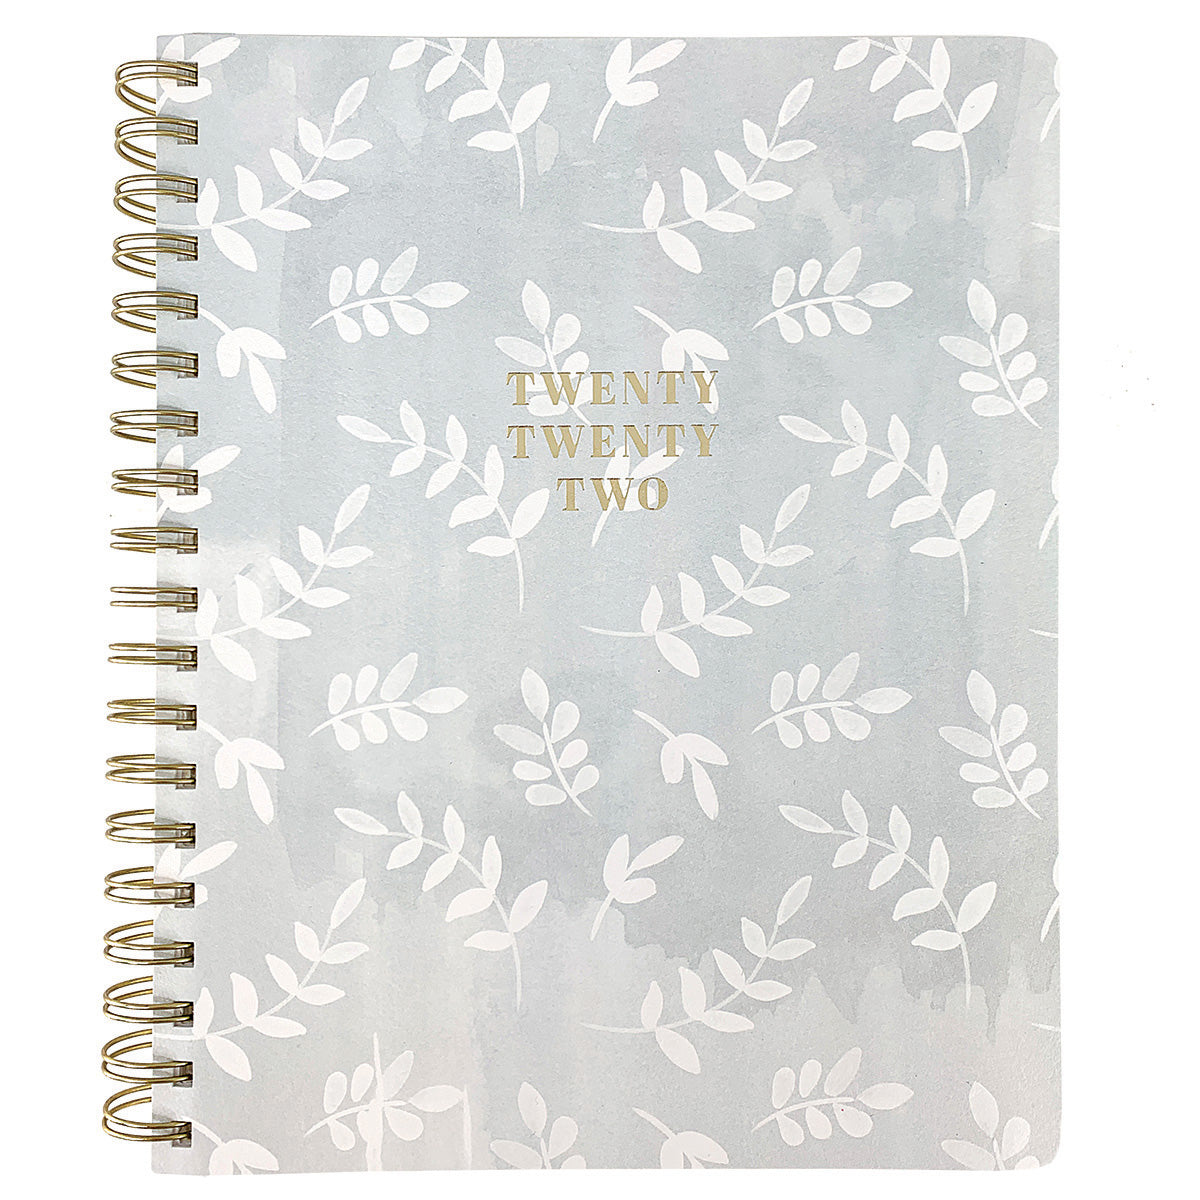 Foliage 8x10 18-Month Spiral Vegan Leather Planner